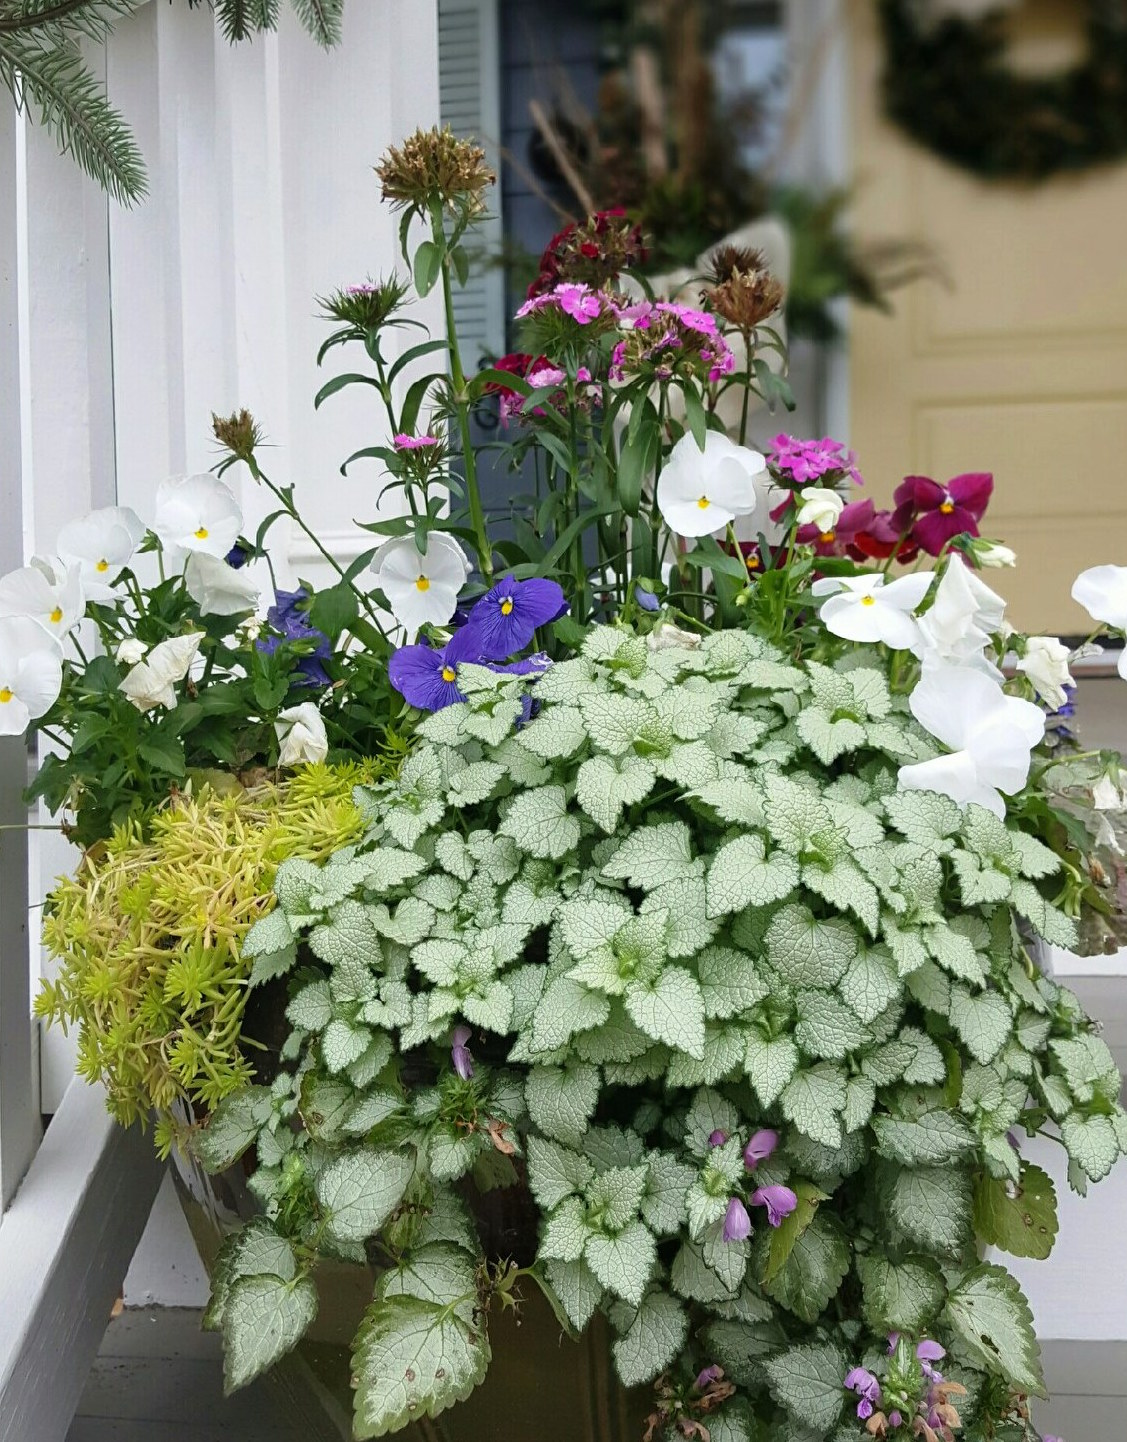 This year, why not skip the bouquet and make Mom a living collection of flowers and plants that may last for years?  Self-contained gardens filled with woody perennials like shrubs and accented with colorful vines and annuals can add color and texture to any corner of the home and can be maintained with little work.